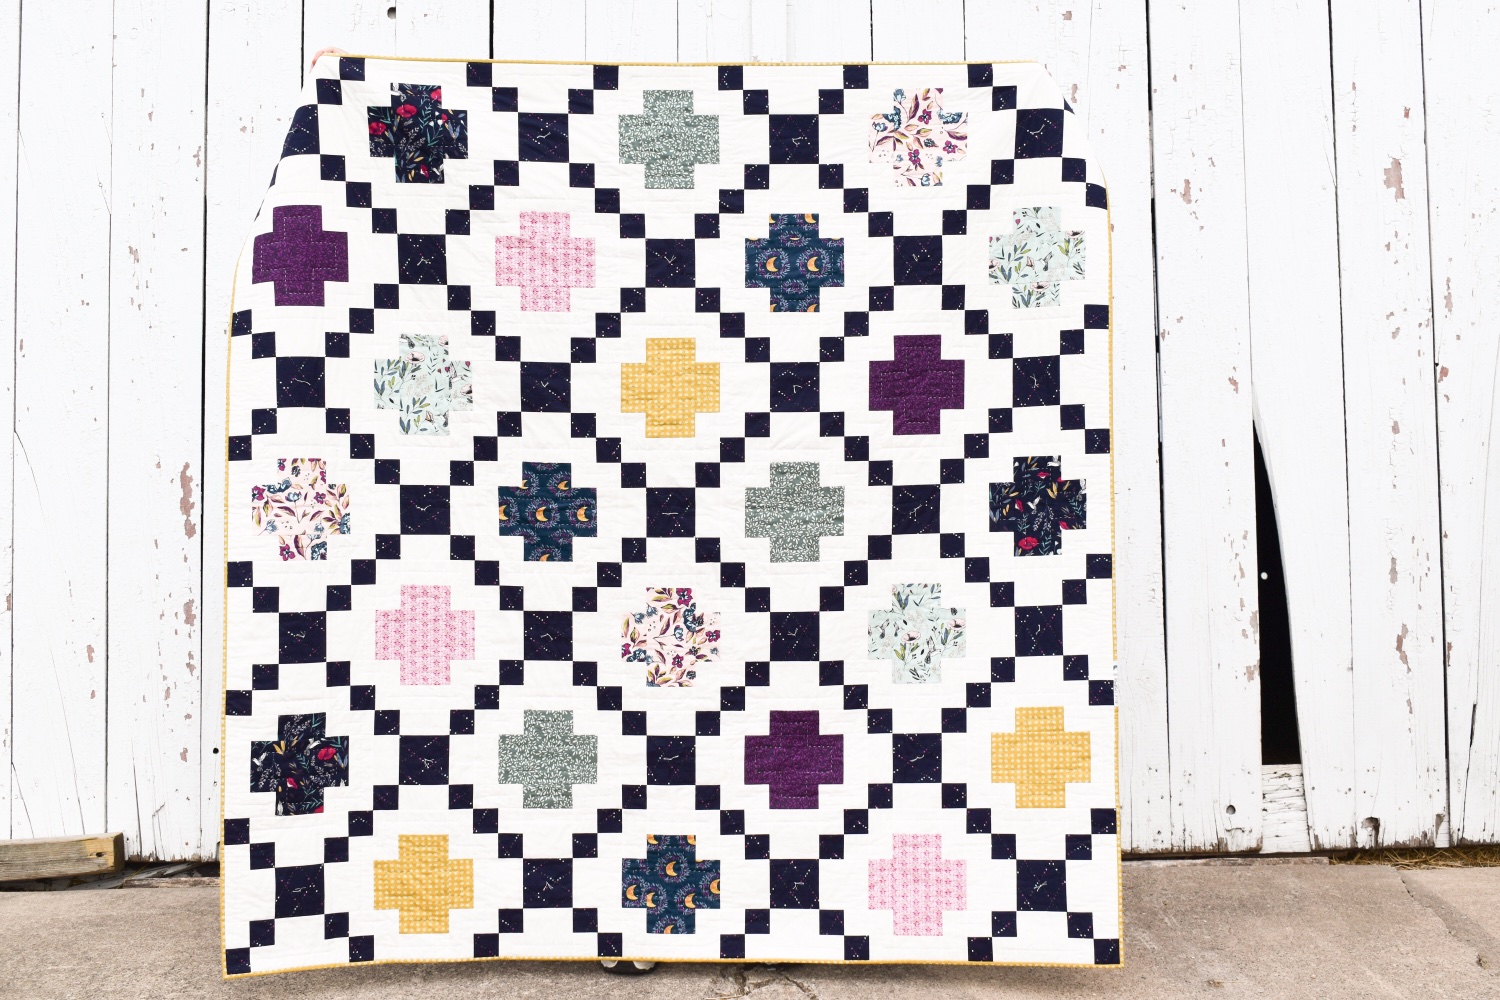 Modern Crossing | A Finished Quilt